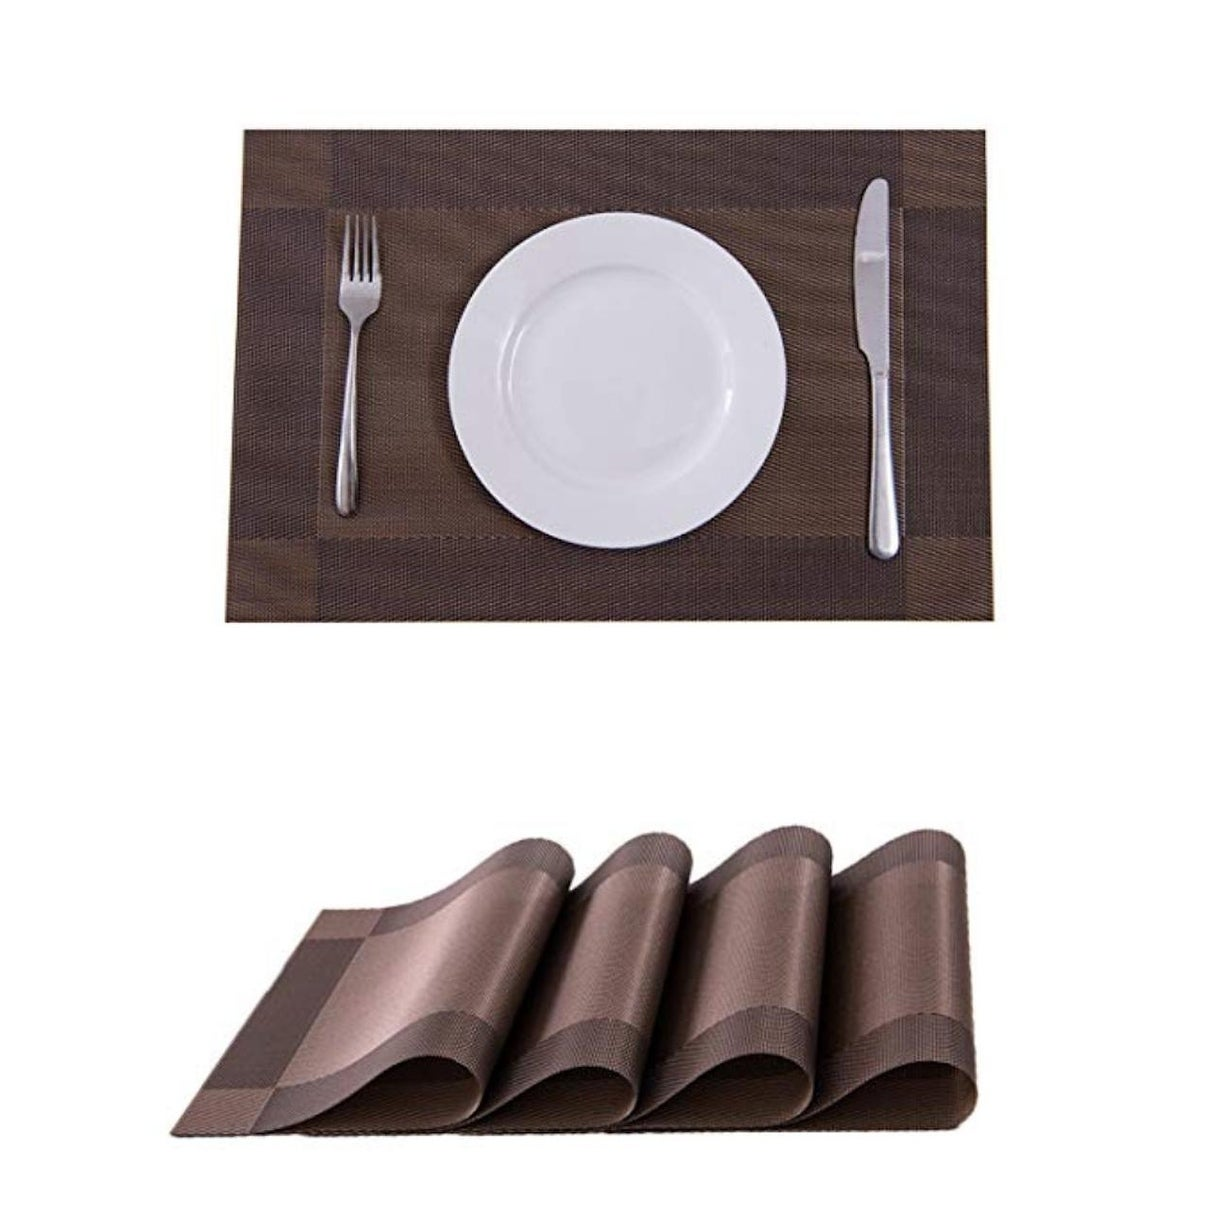 PVC Heat and Stain Resistant Place Mats Set of 4 Dark Brown 18 x 12